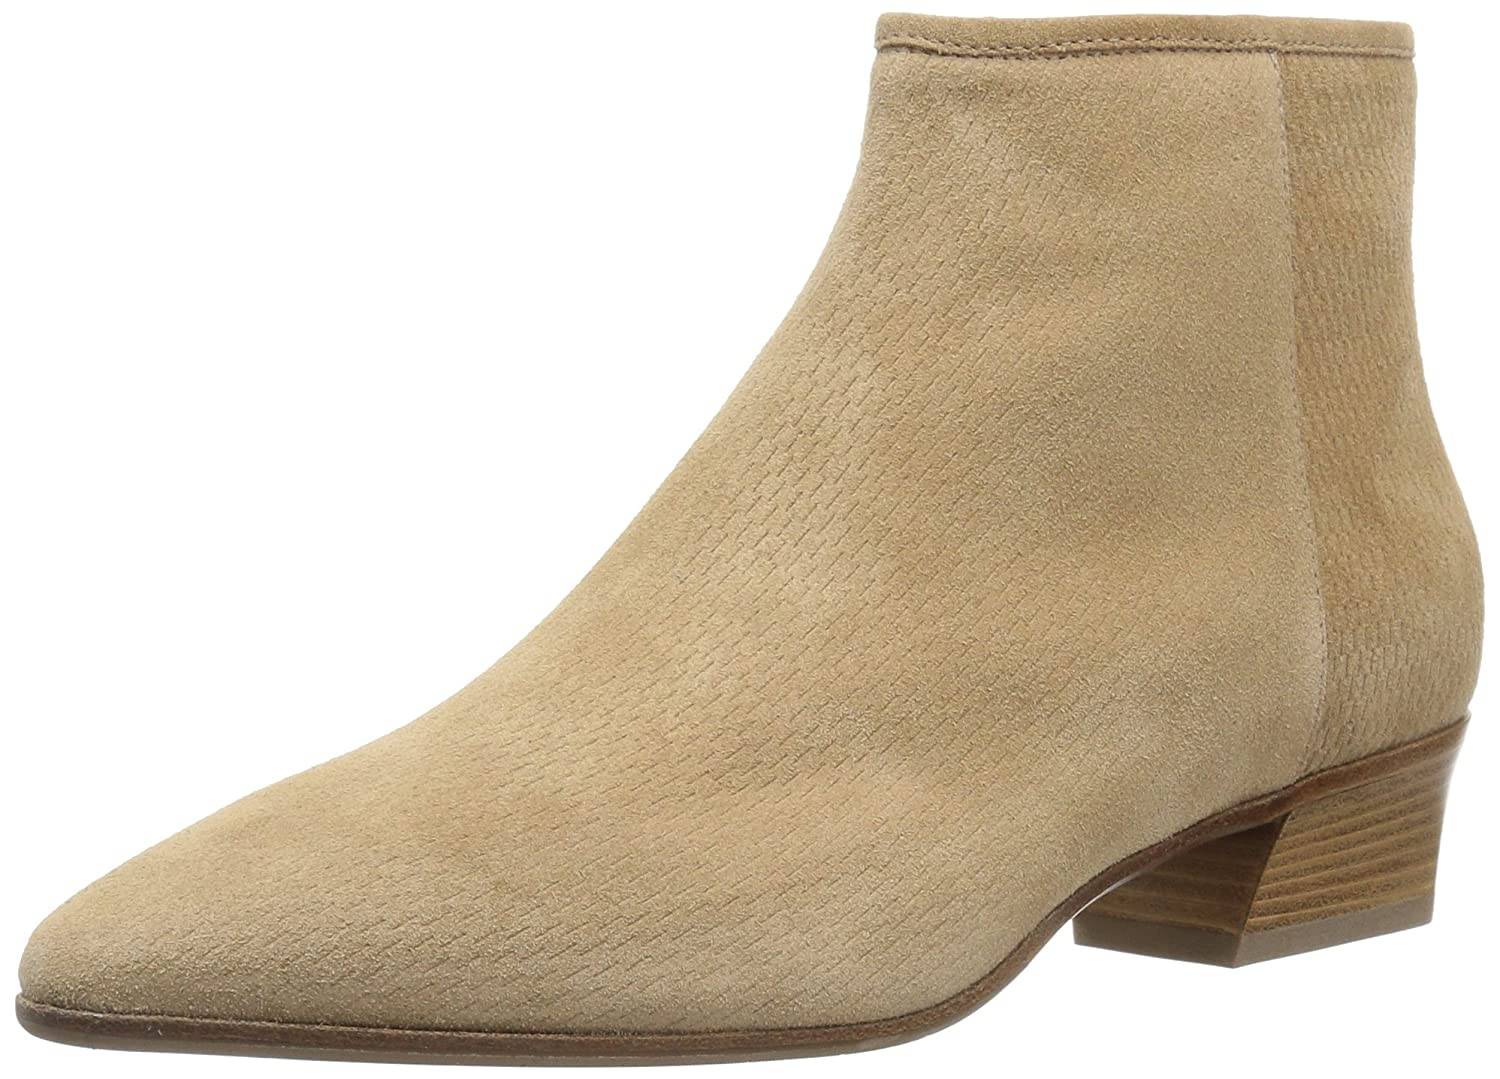 Aquatalia Women's Fire Perforated Suede Ankle Boot B071X9S9FY 9 M M US|Sand